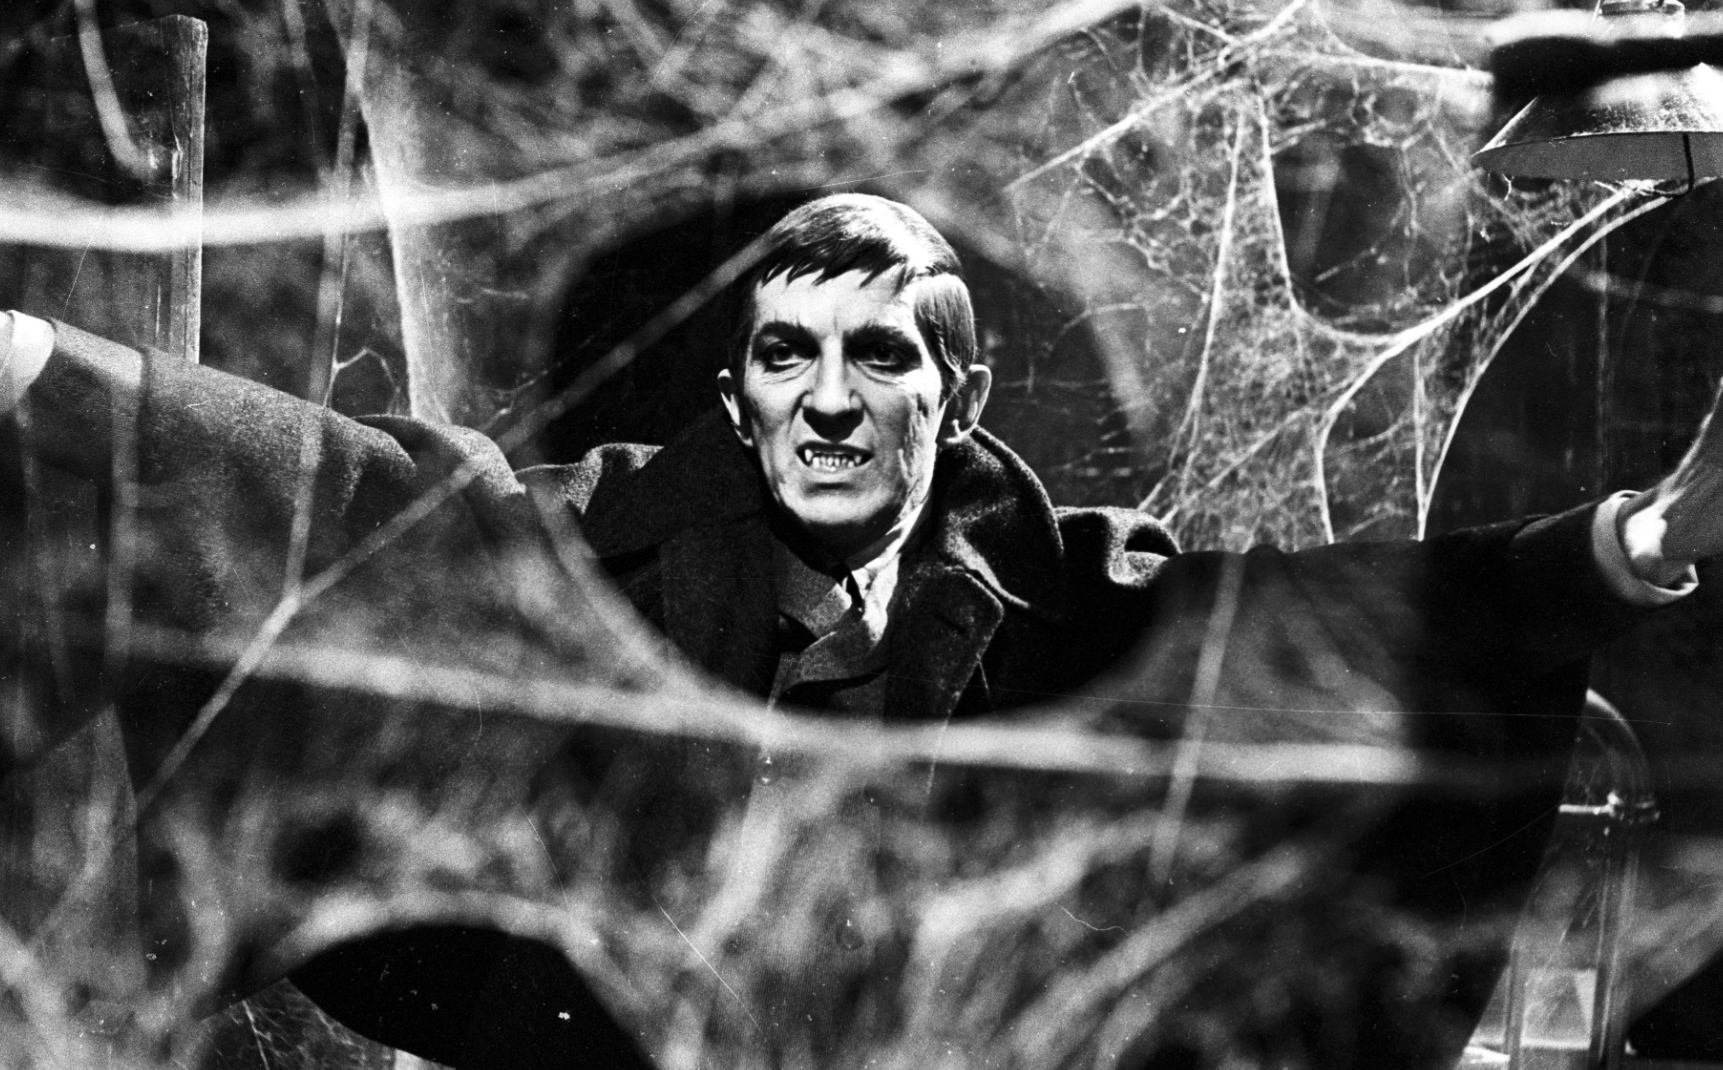 The CW Knows Its Audience, Wants to Resurrect Another Classic With Dark Shadows: Reincarnation